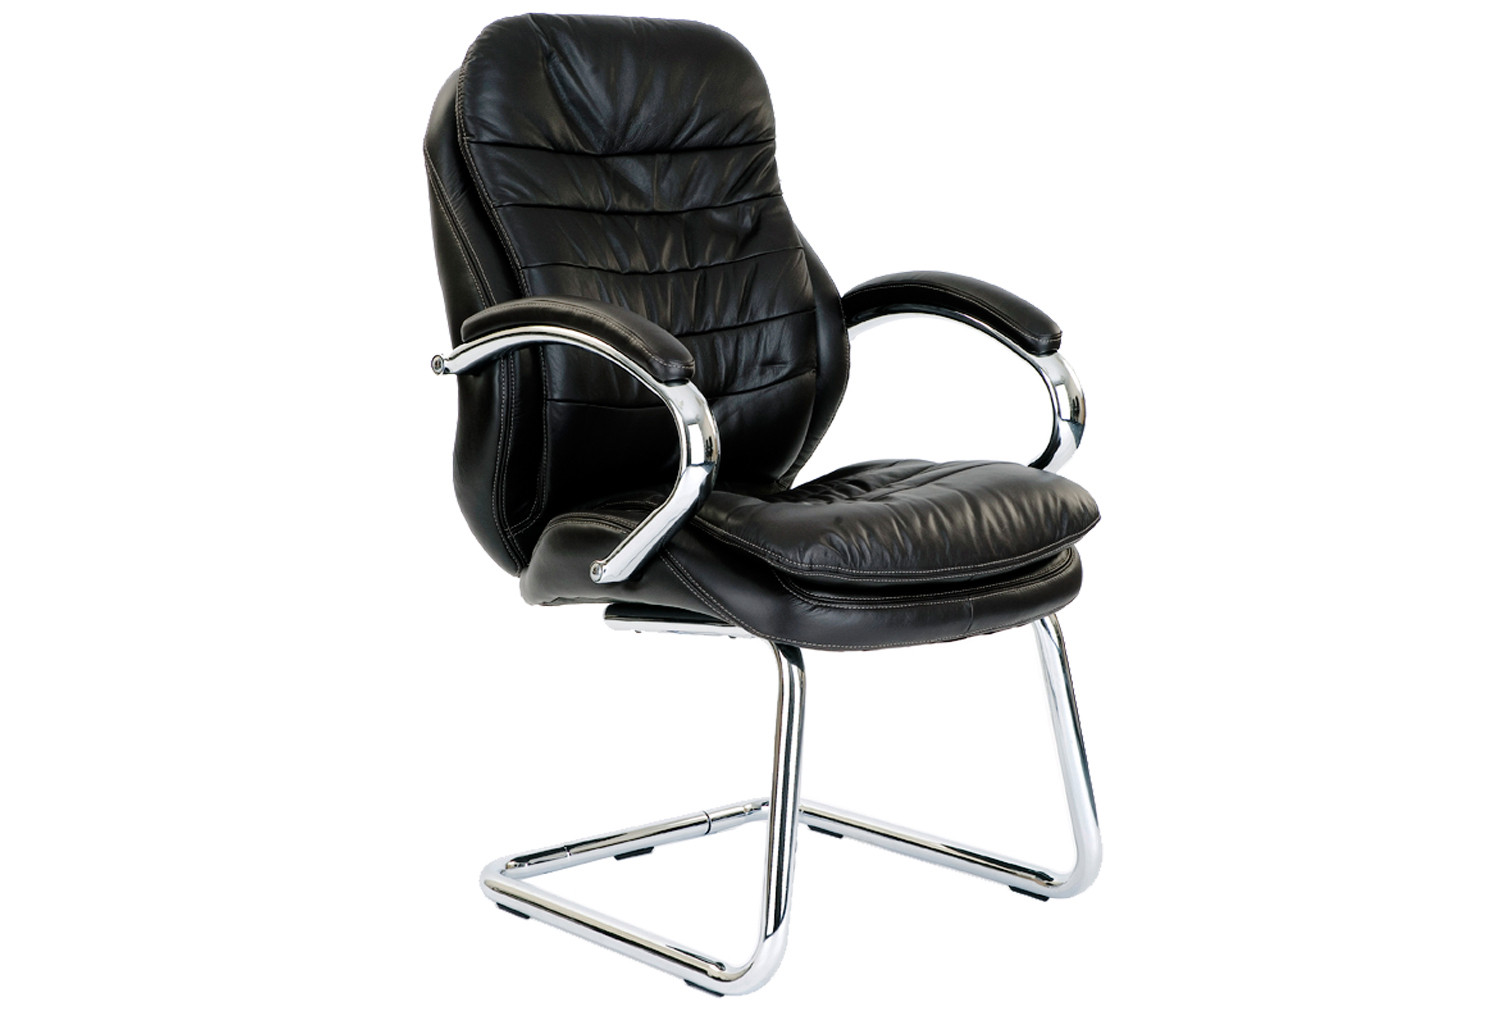 Nairn Black Leather Faced Visitor Chair